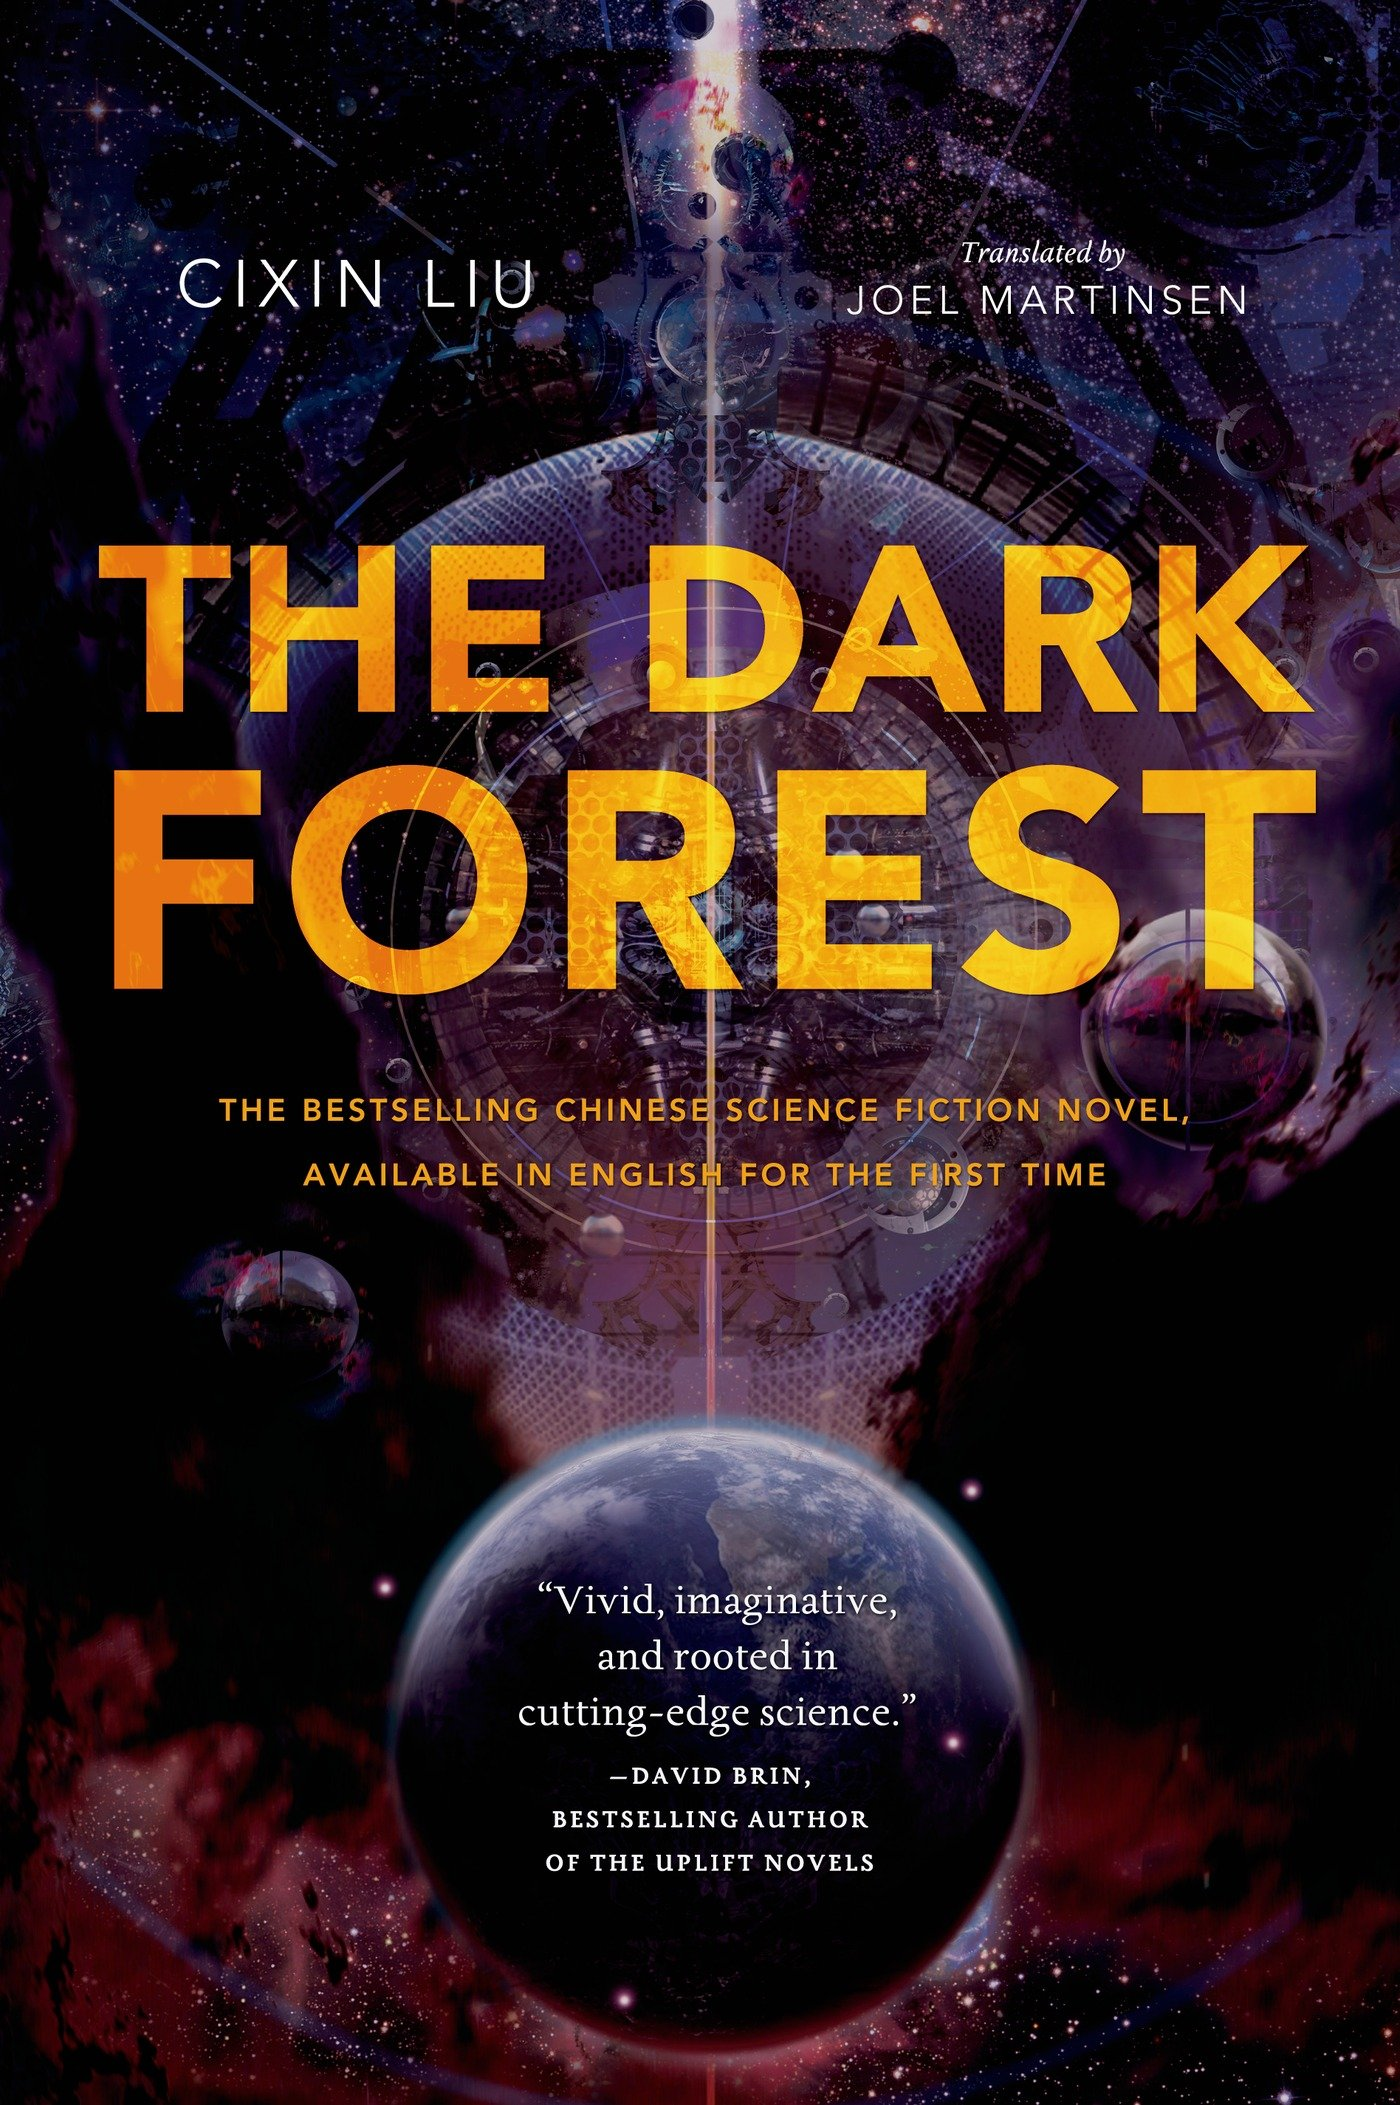 'The Dark Forest' by Cixin Liu